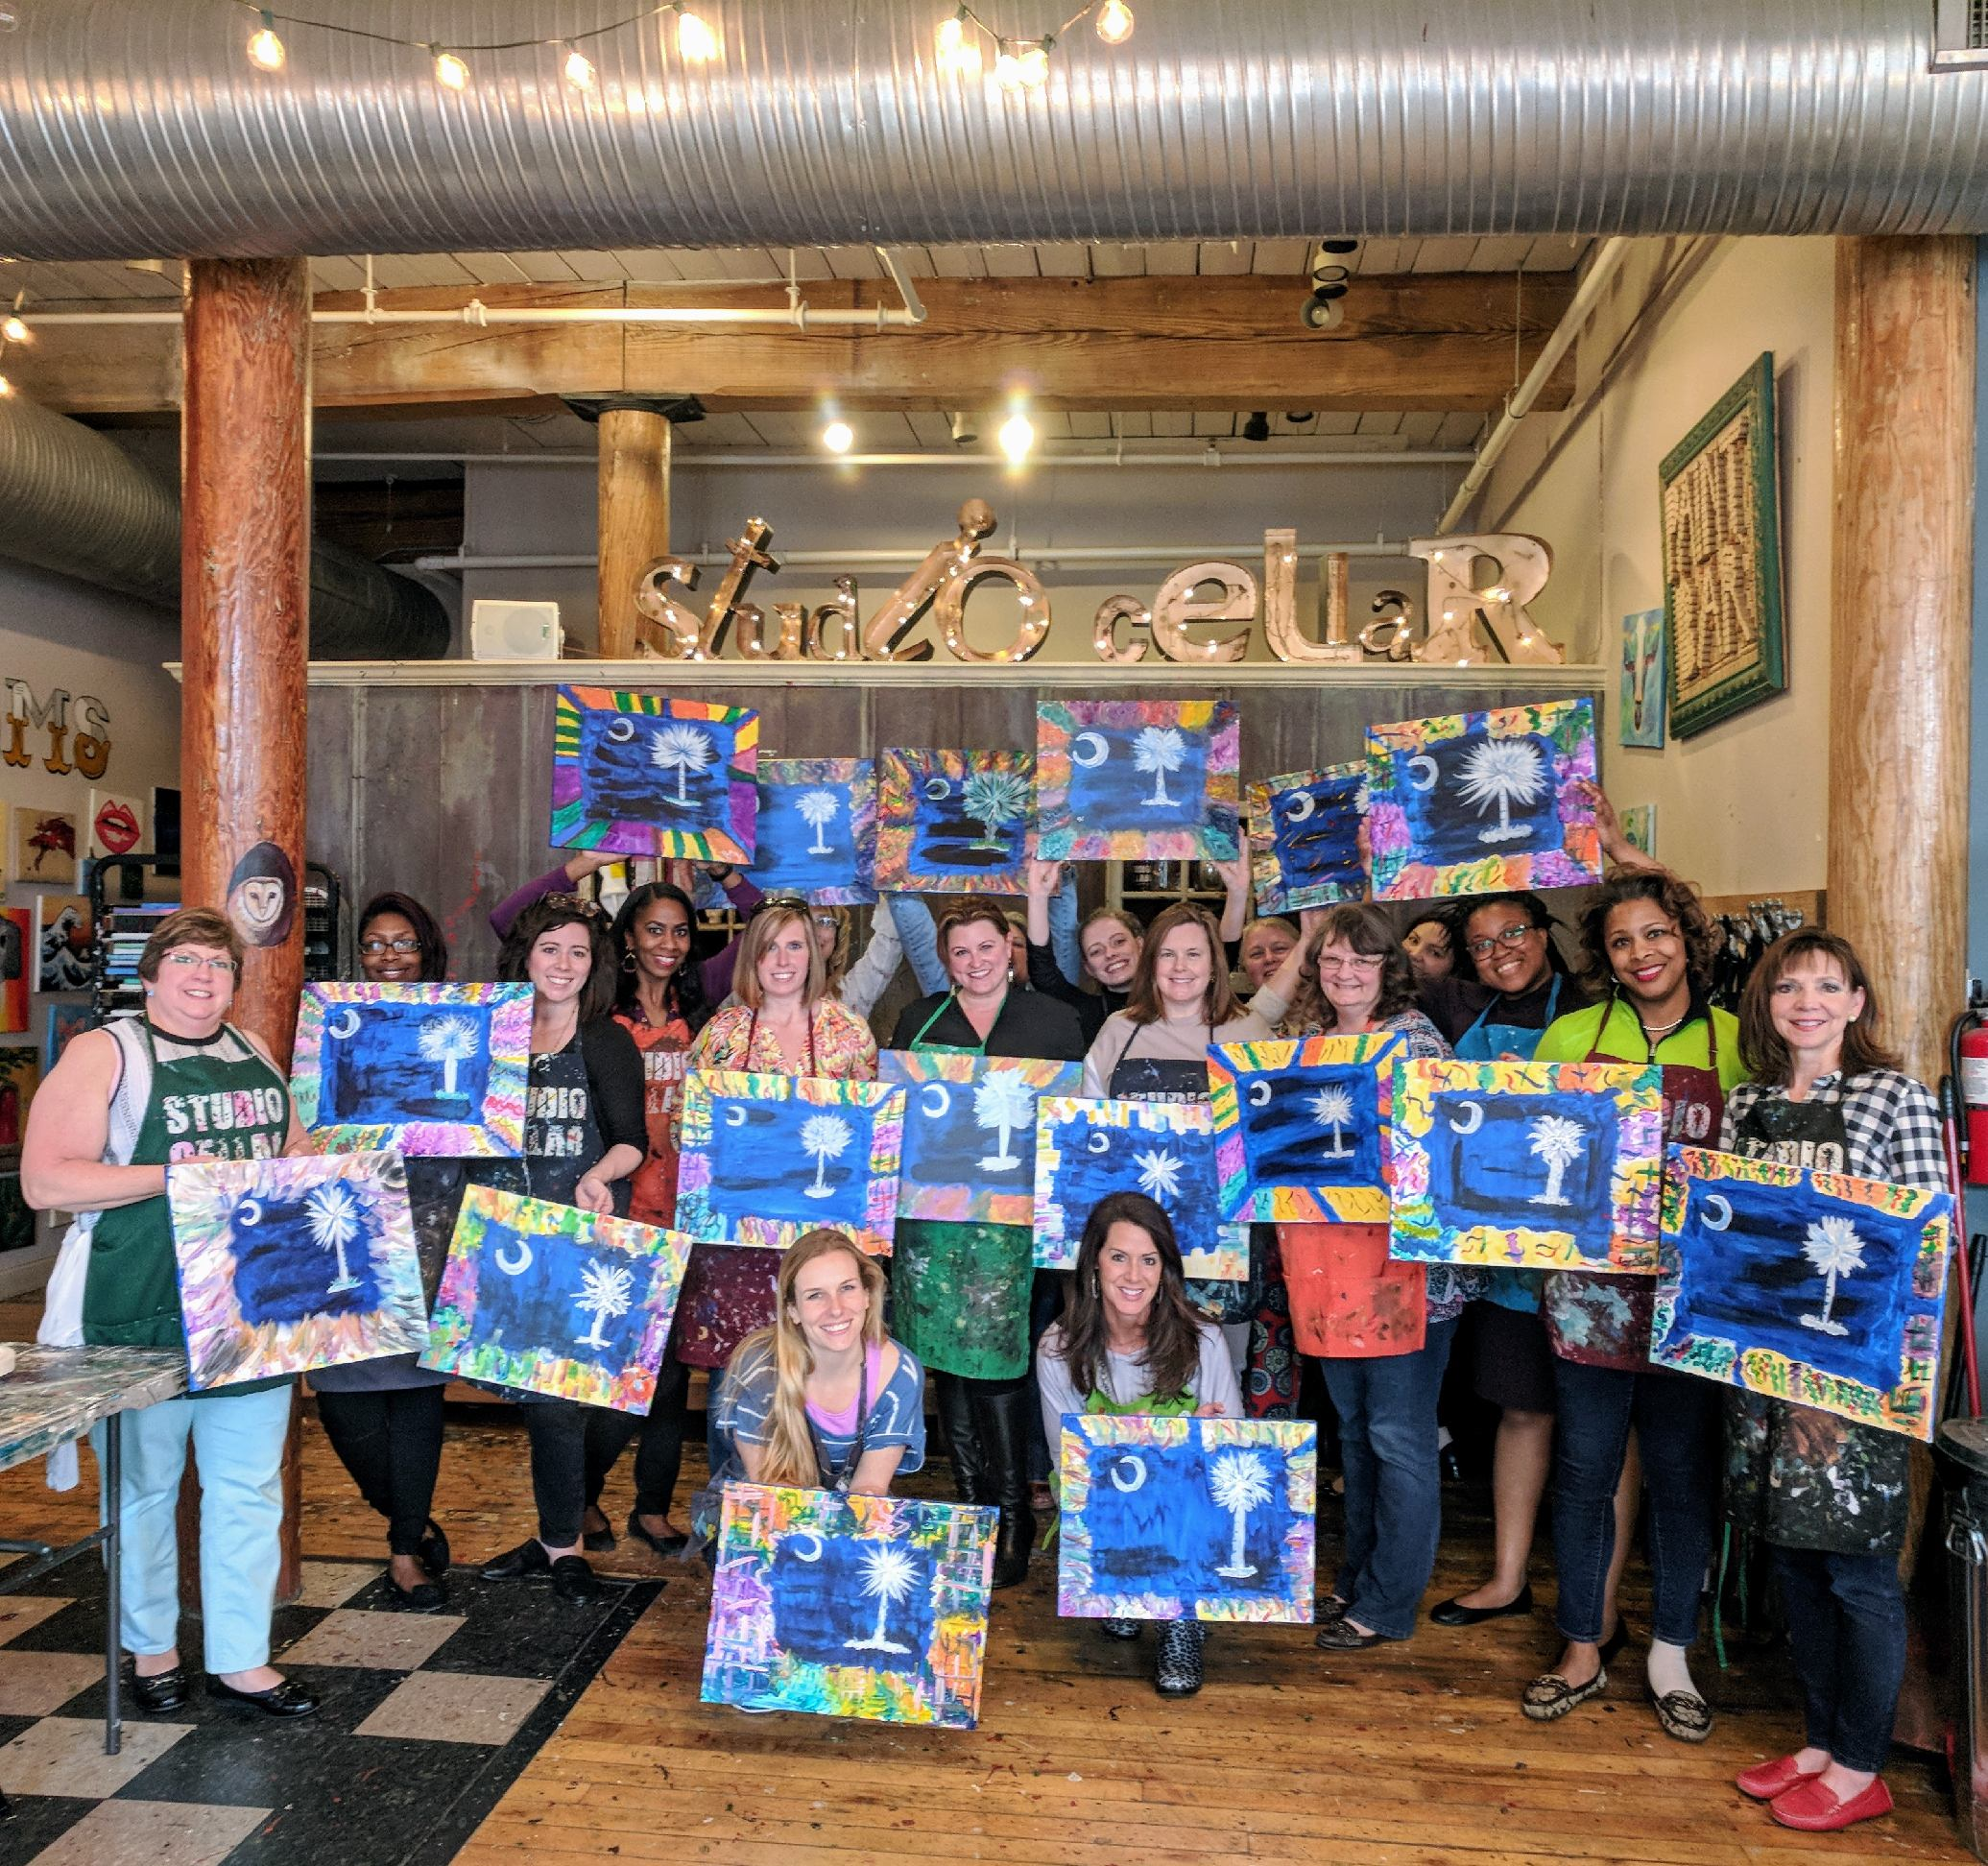 Studio Cellar Art And Wine Best Paint And Sip Event Venue